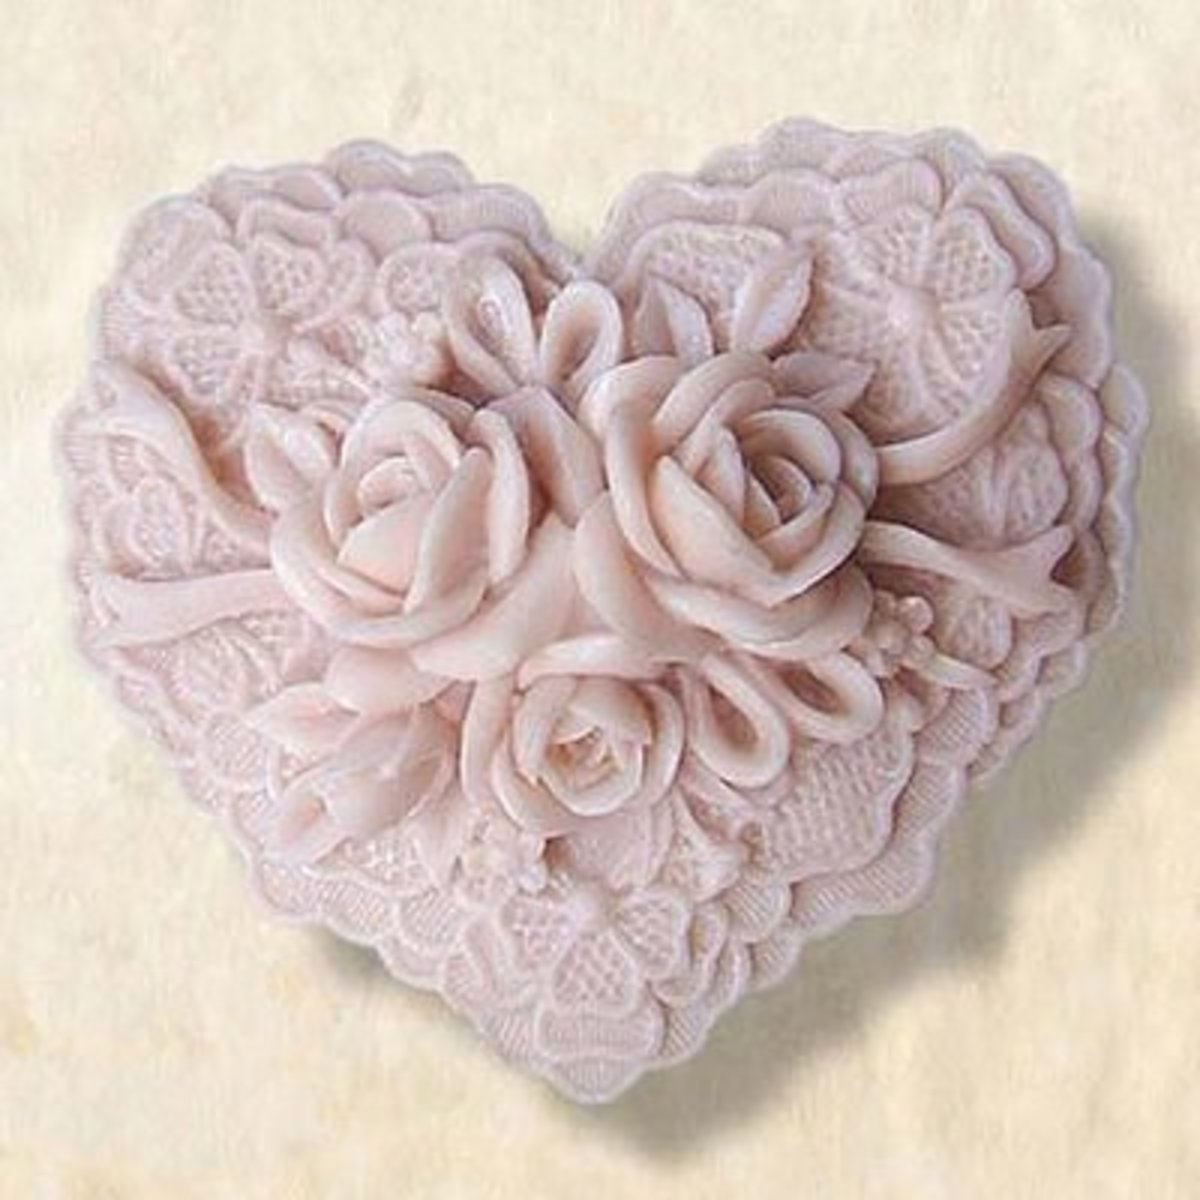 Lovely heart shapd soap mold